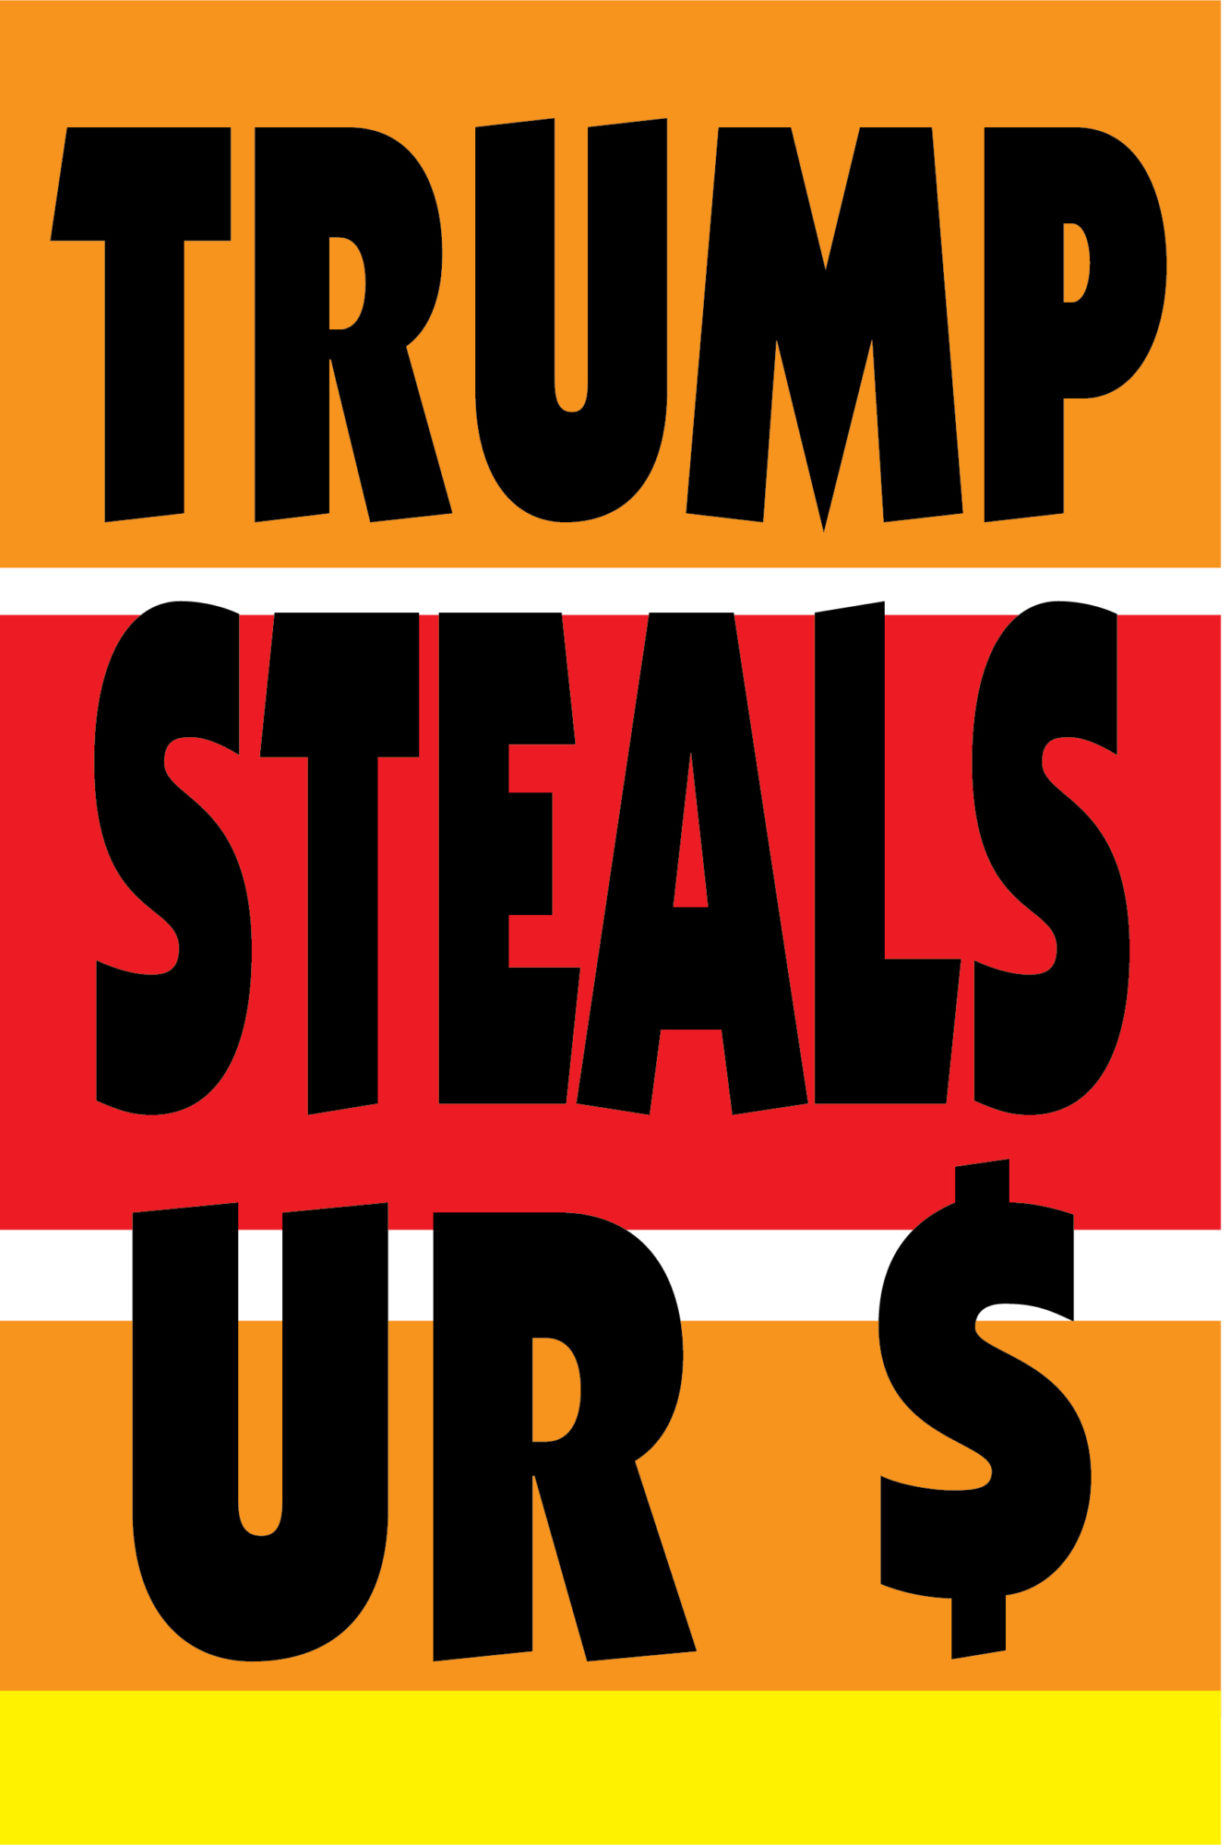 NP_76_100_2017_Trump-Steals-Ur-Money.jpg